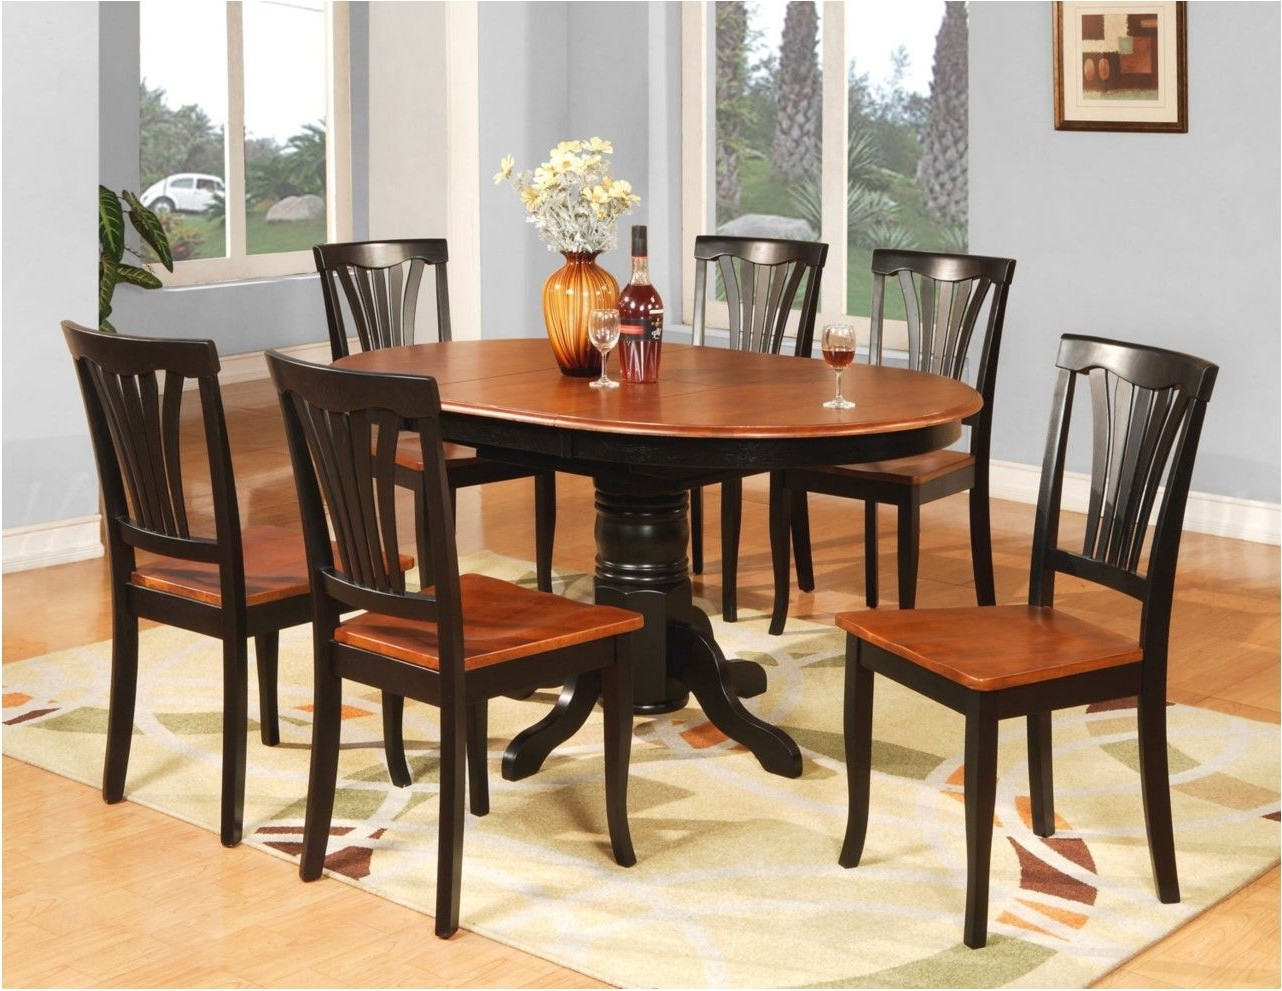 Popular Round 6 Person Dining Tables Pertaining To Magnificent Round Kitchen Table Sets For 6 Medium Size Of Person (View 19 of 25)